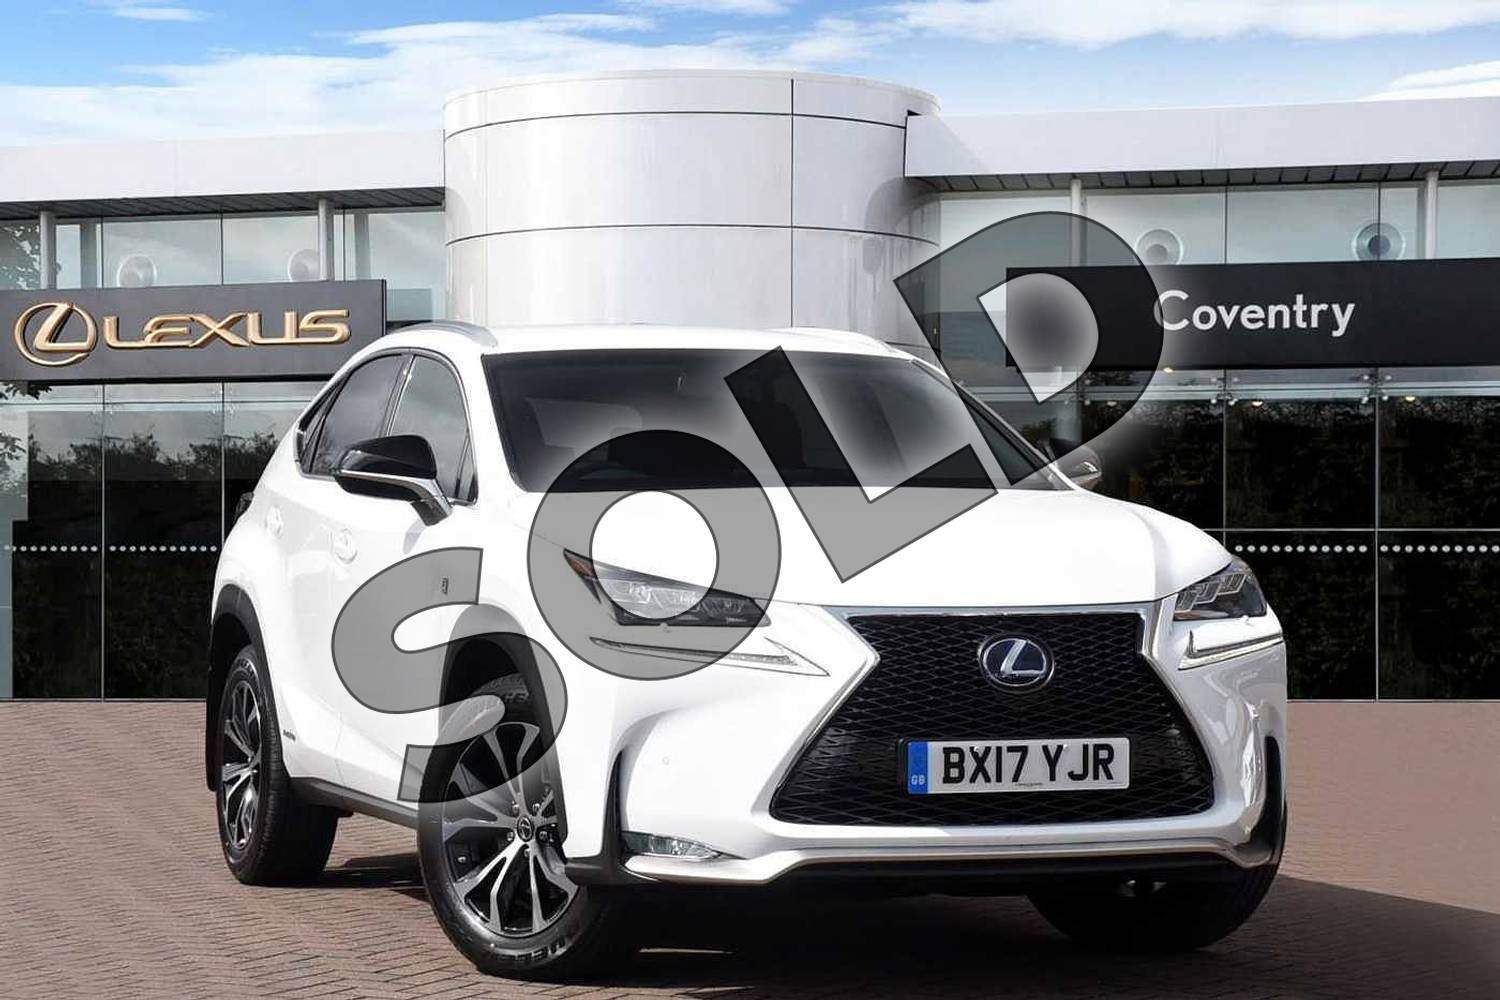 2017 Lexus NX300h F-SPORT Premium Navigation Red Heated Leather Seat in F Sport White at Lexus Coventry